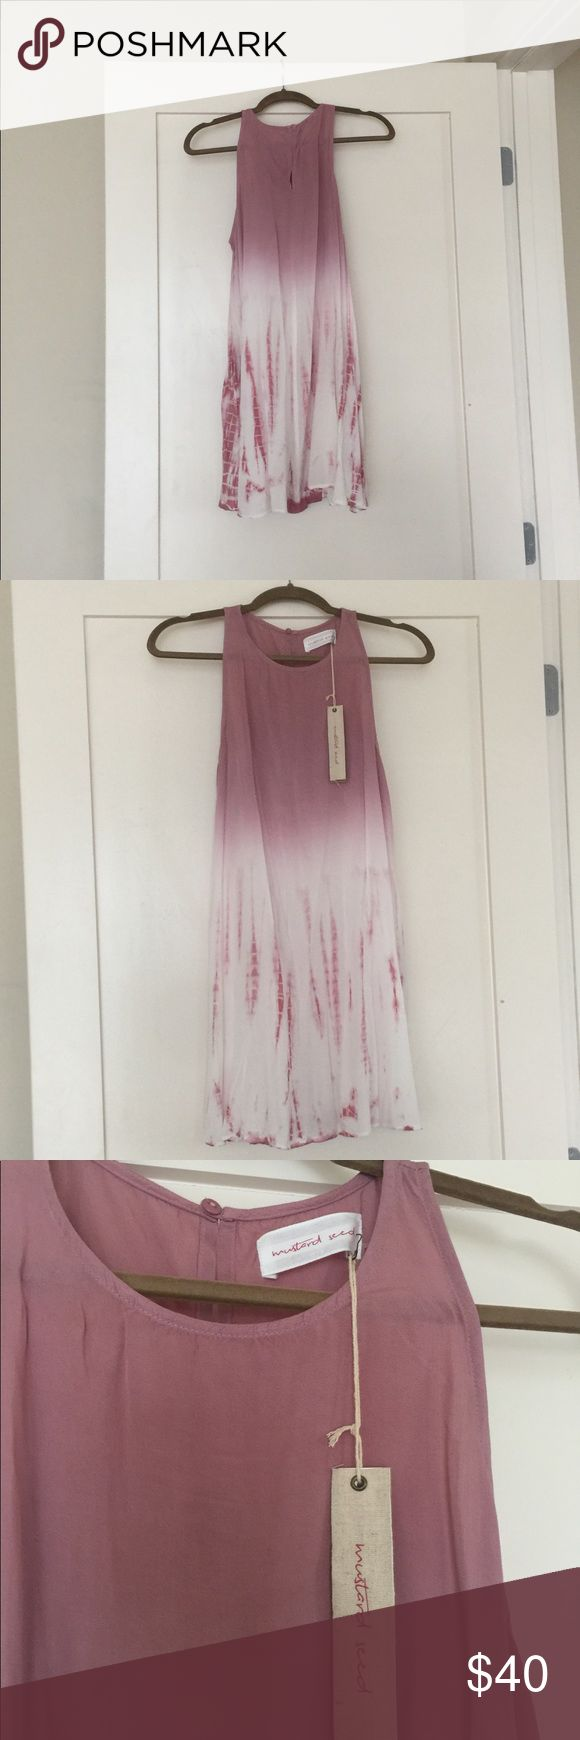 Pink tie dye swing dress New with tags, pink tie dye swing dress. This dress is not lined but is also not see through. Mustard Seed Dresses